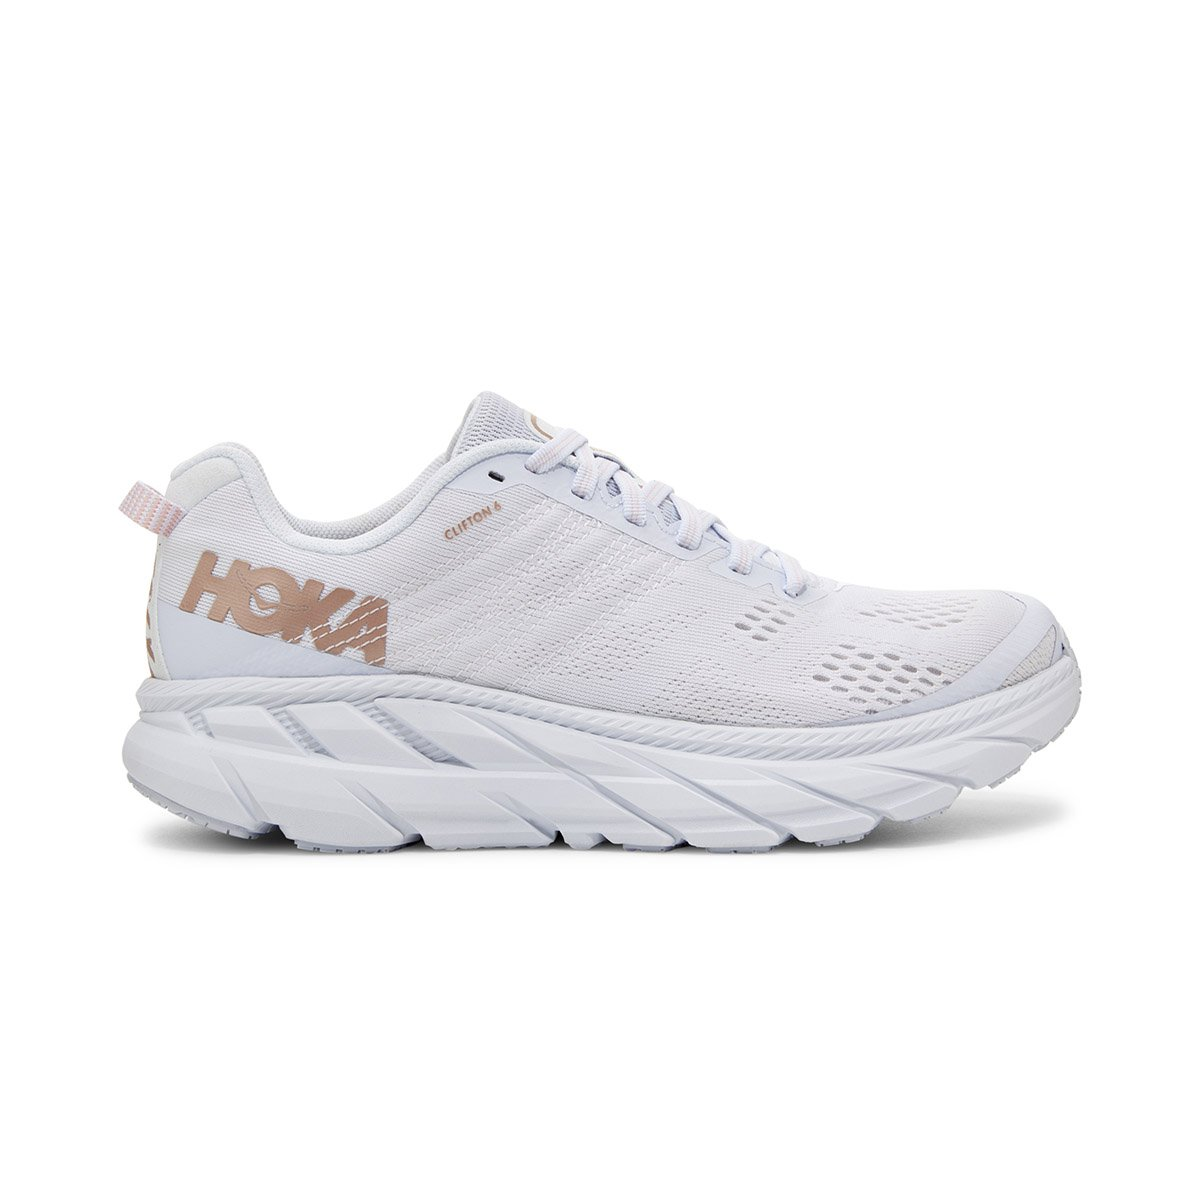 Hoka One One Clifton 6 dame